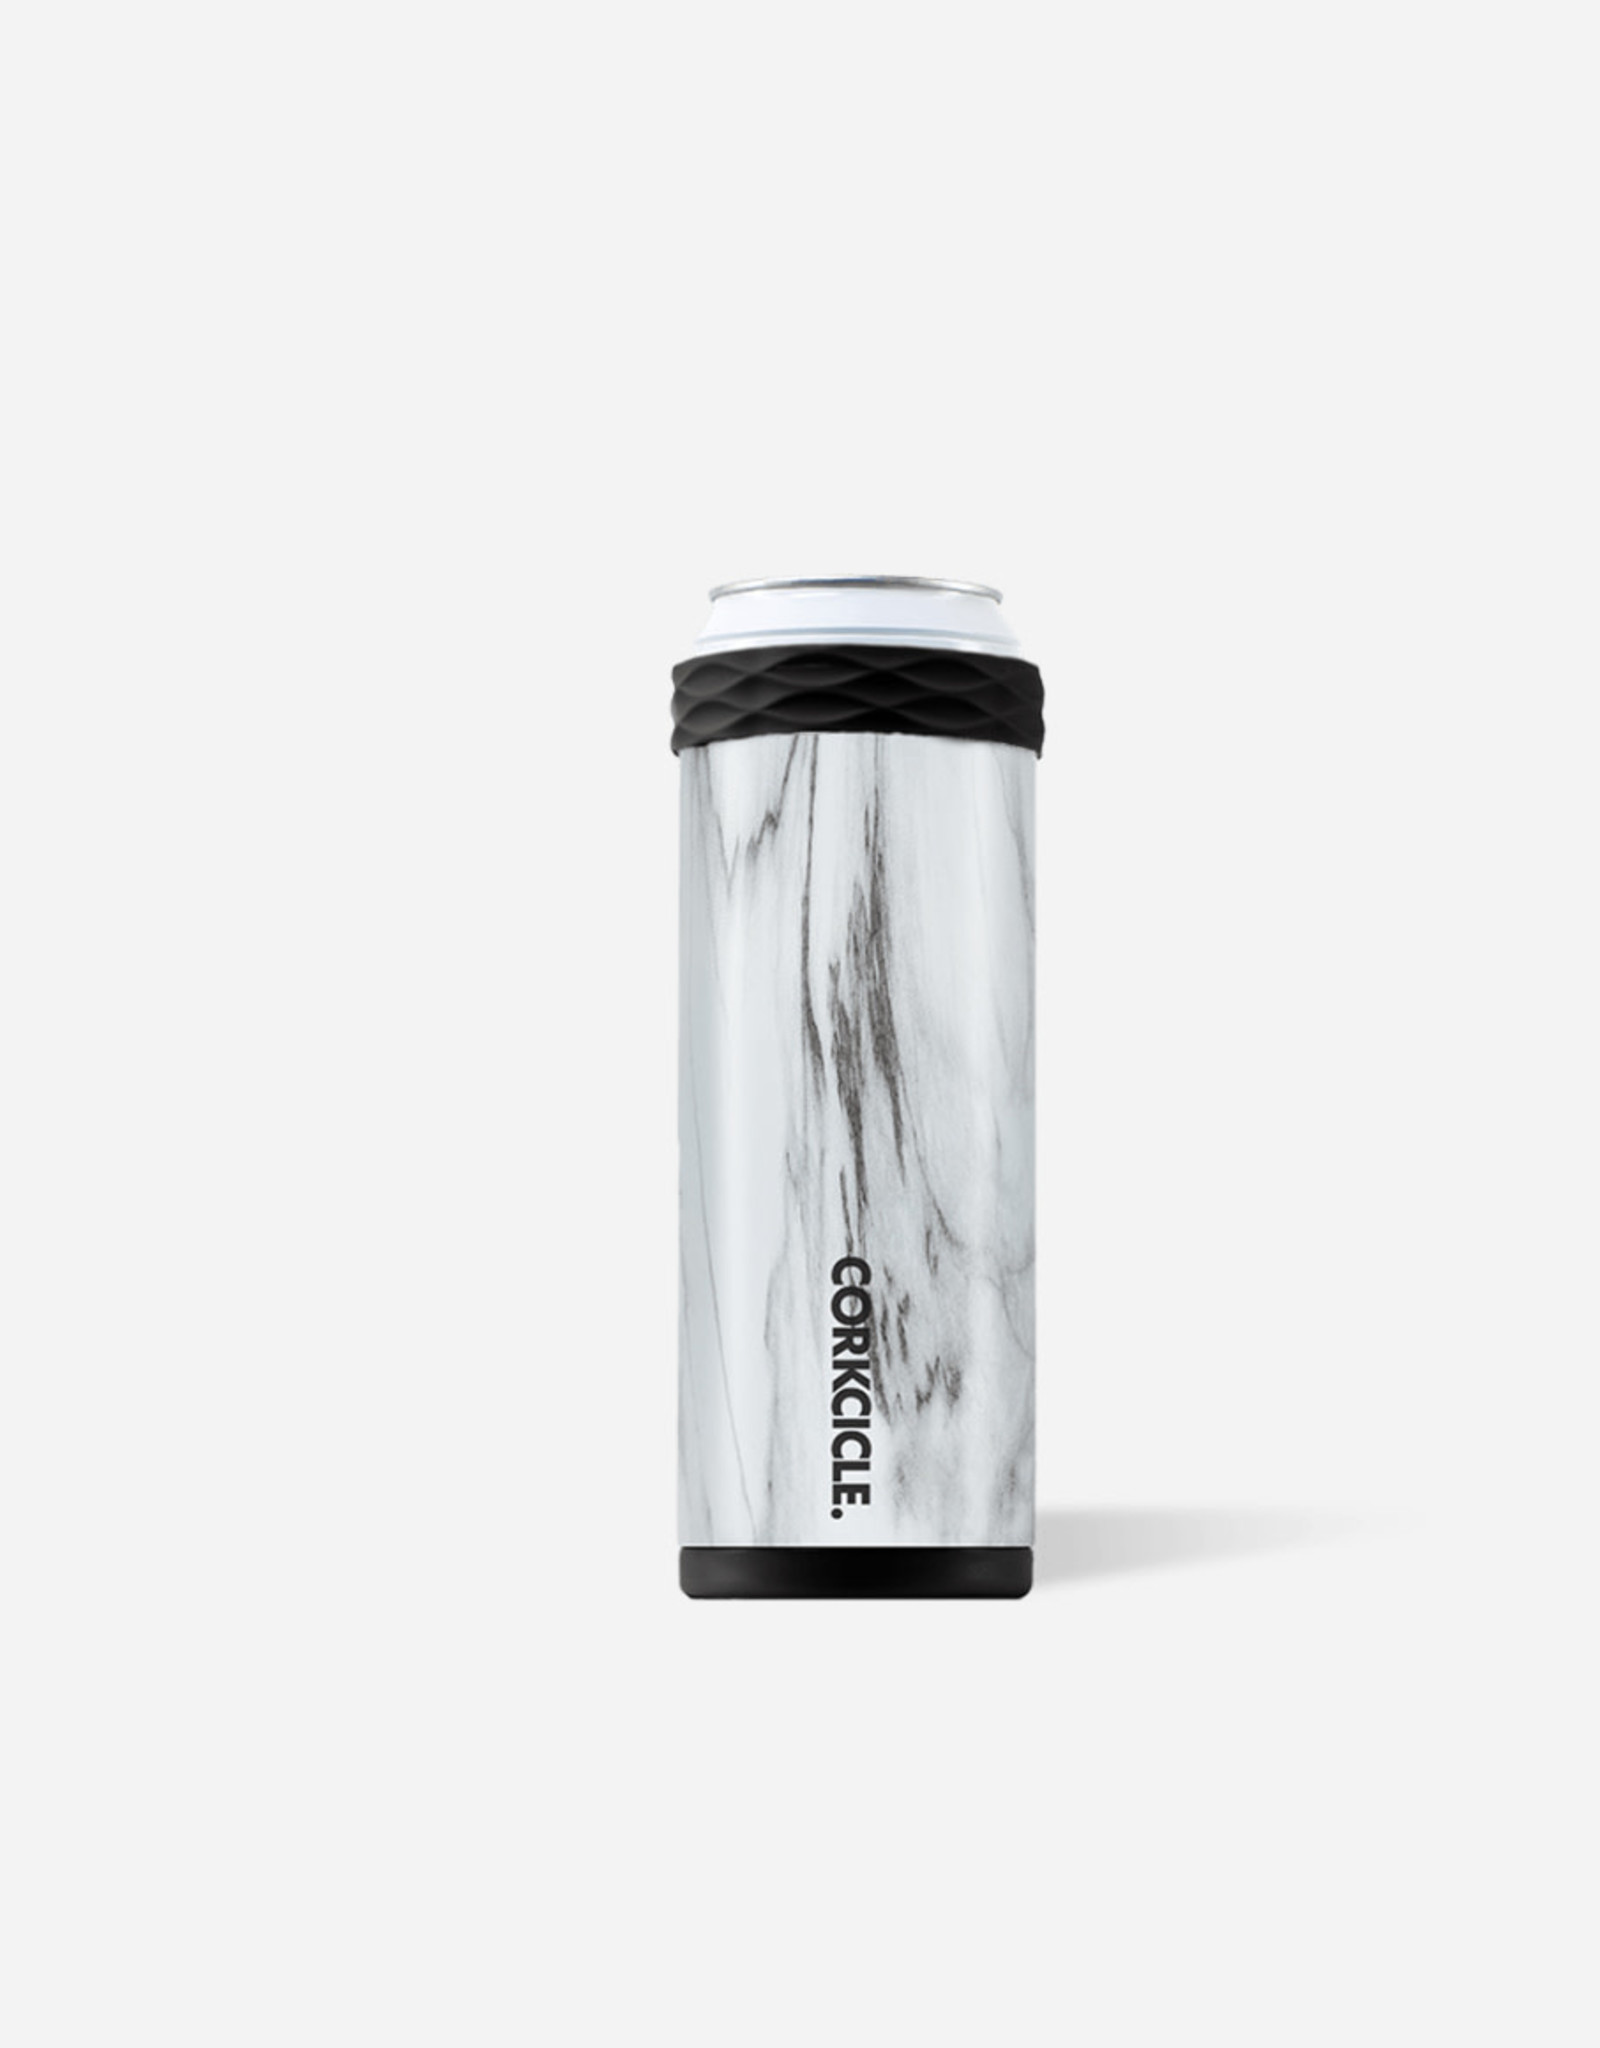 Corkcicle Corkcicle Slim Artican 12oz/8.40oz